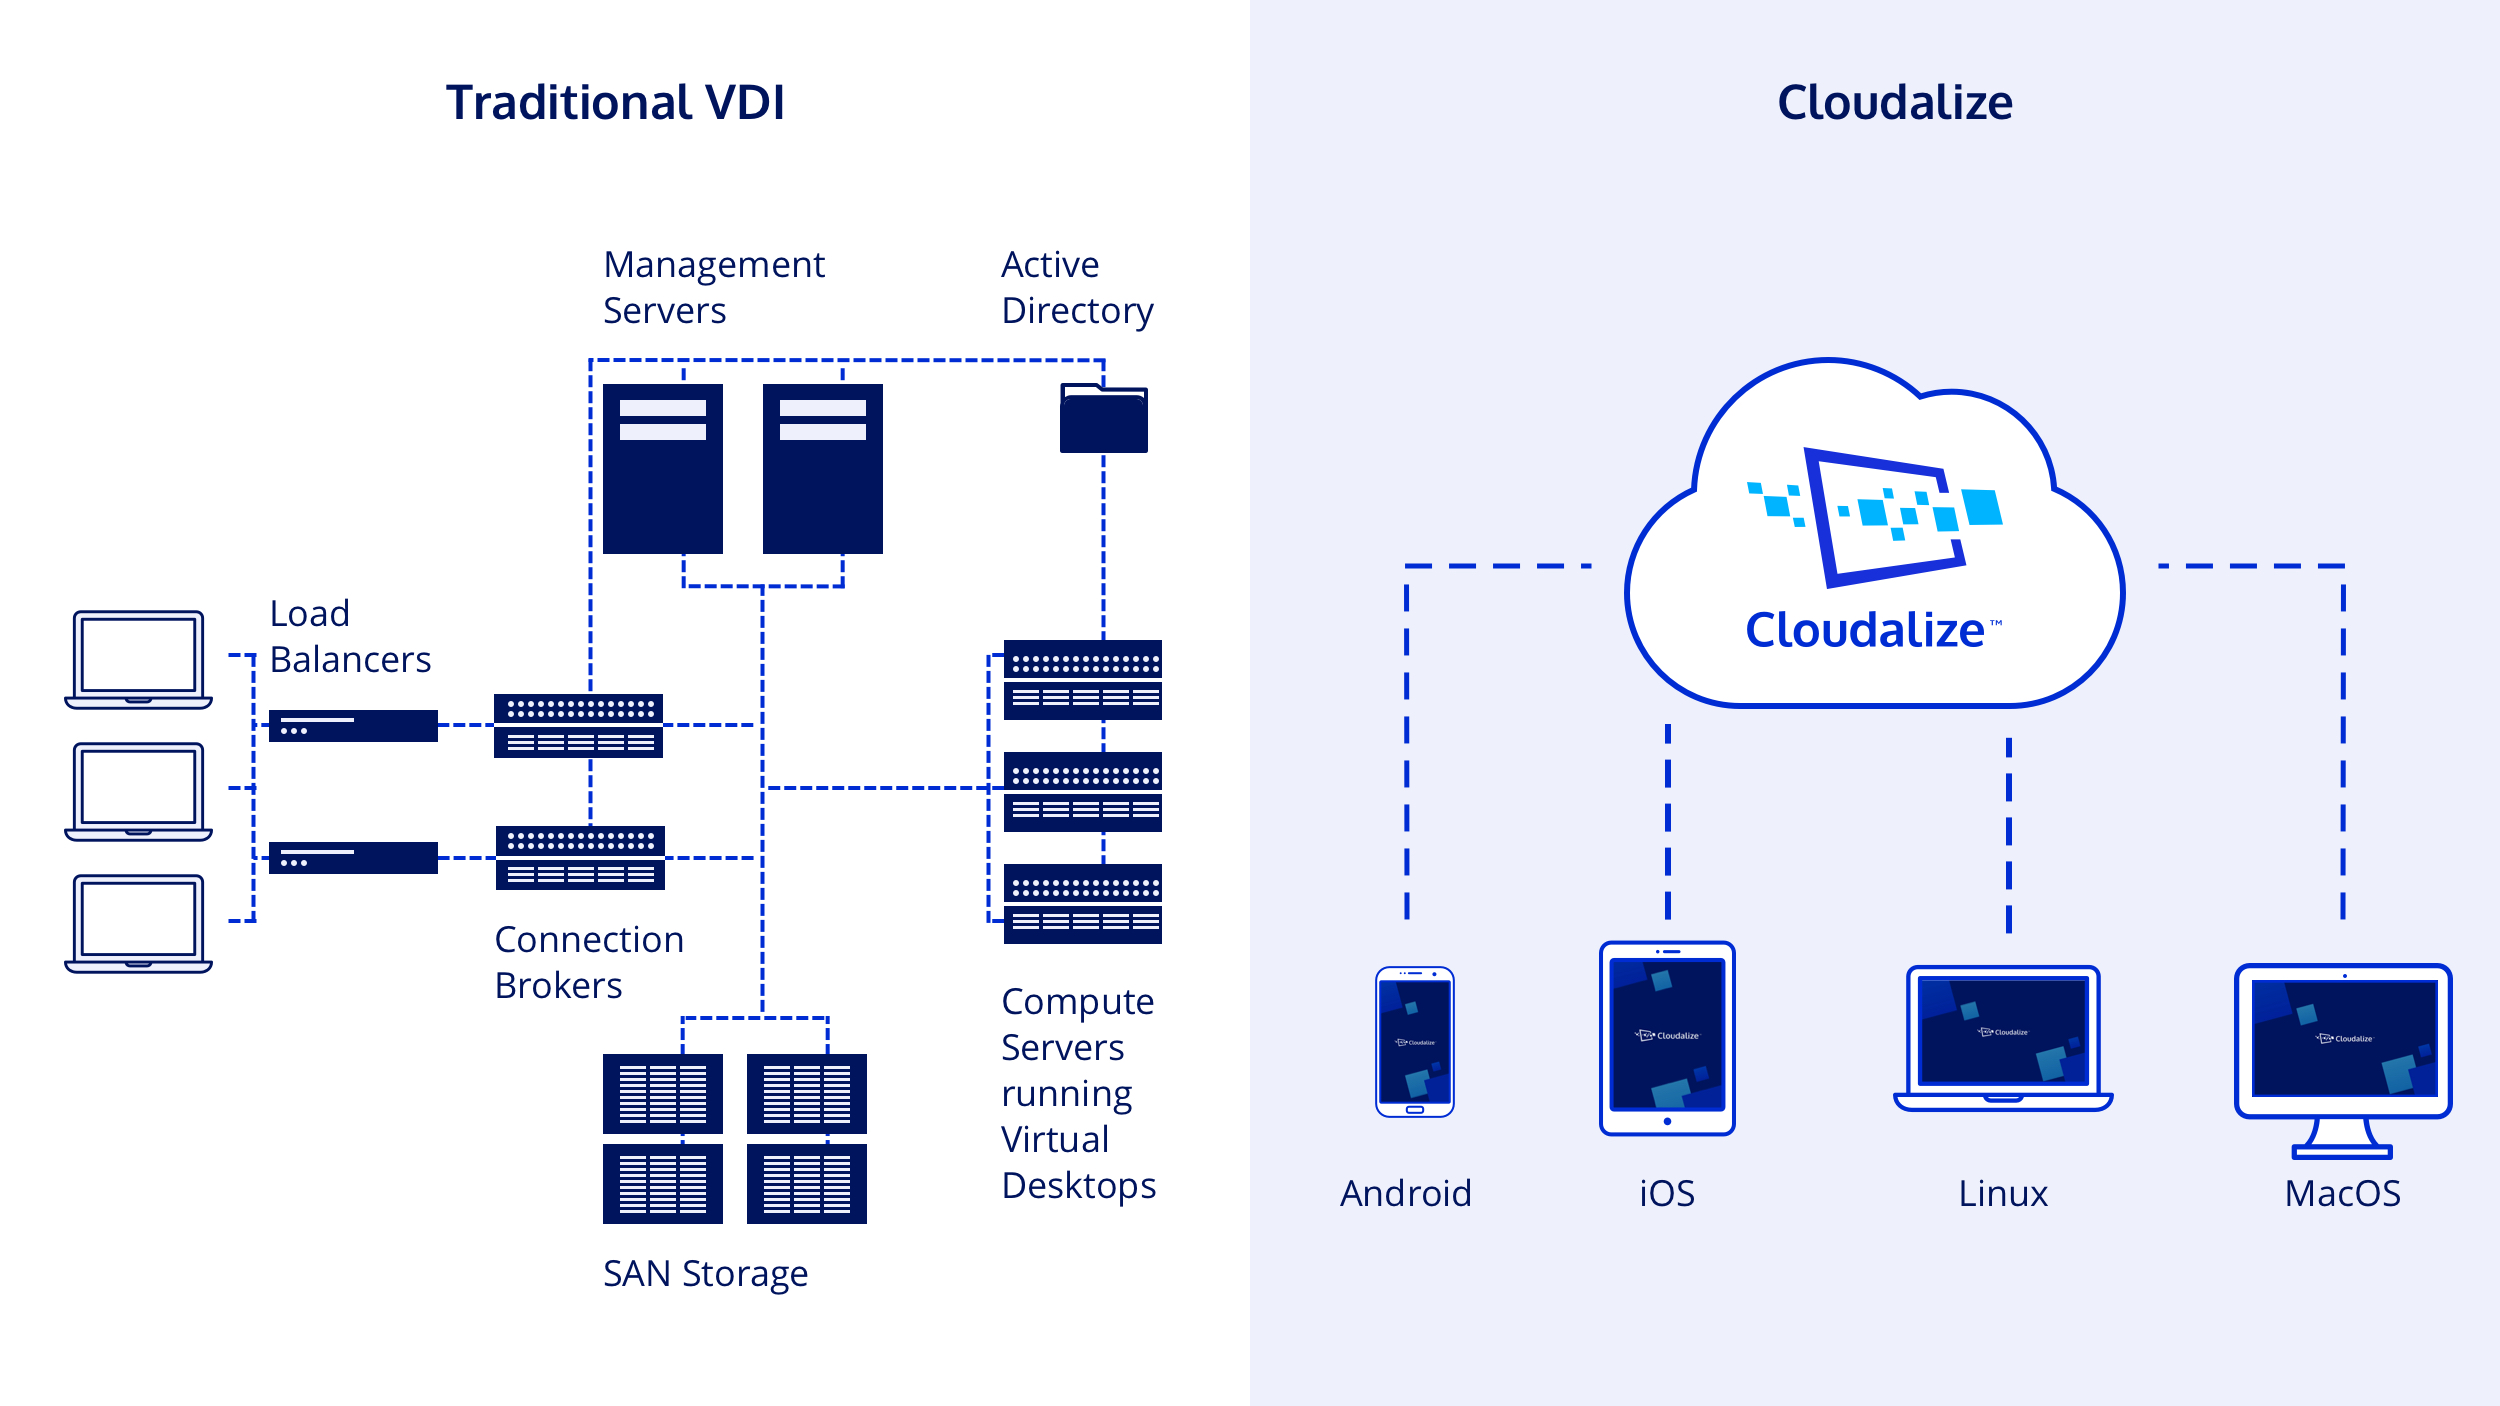 Cloudalize_GPU-powered_platform_cloud_Workstations_DaaS_Private_Cloud_is_not_VDI